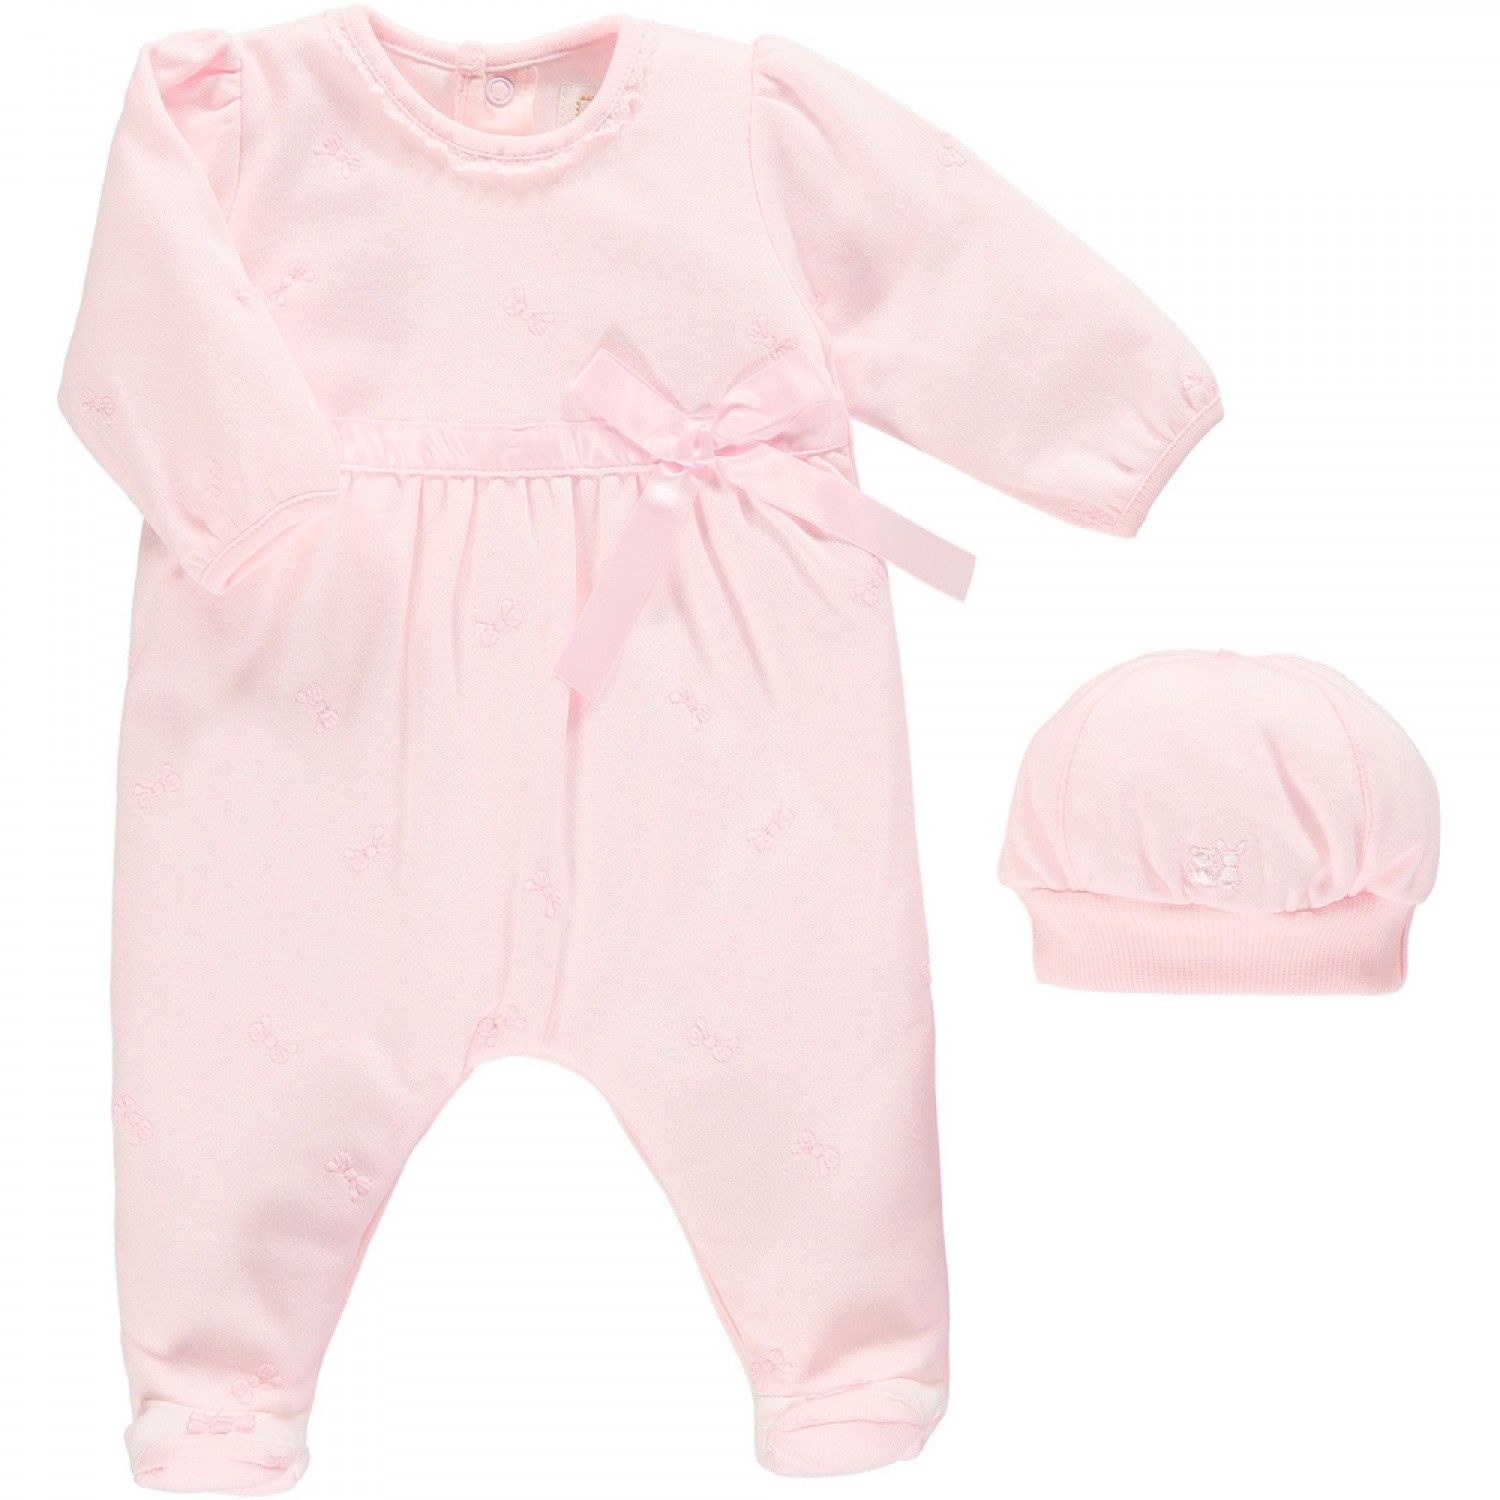 Karly Pretty Girls All in e with Bow Detail & Hat